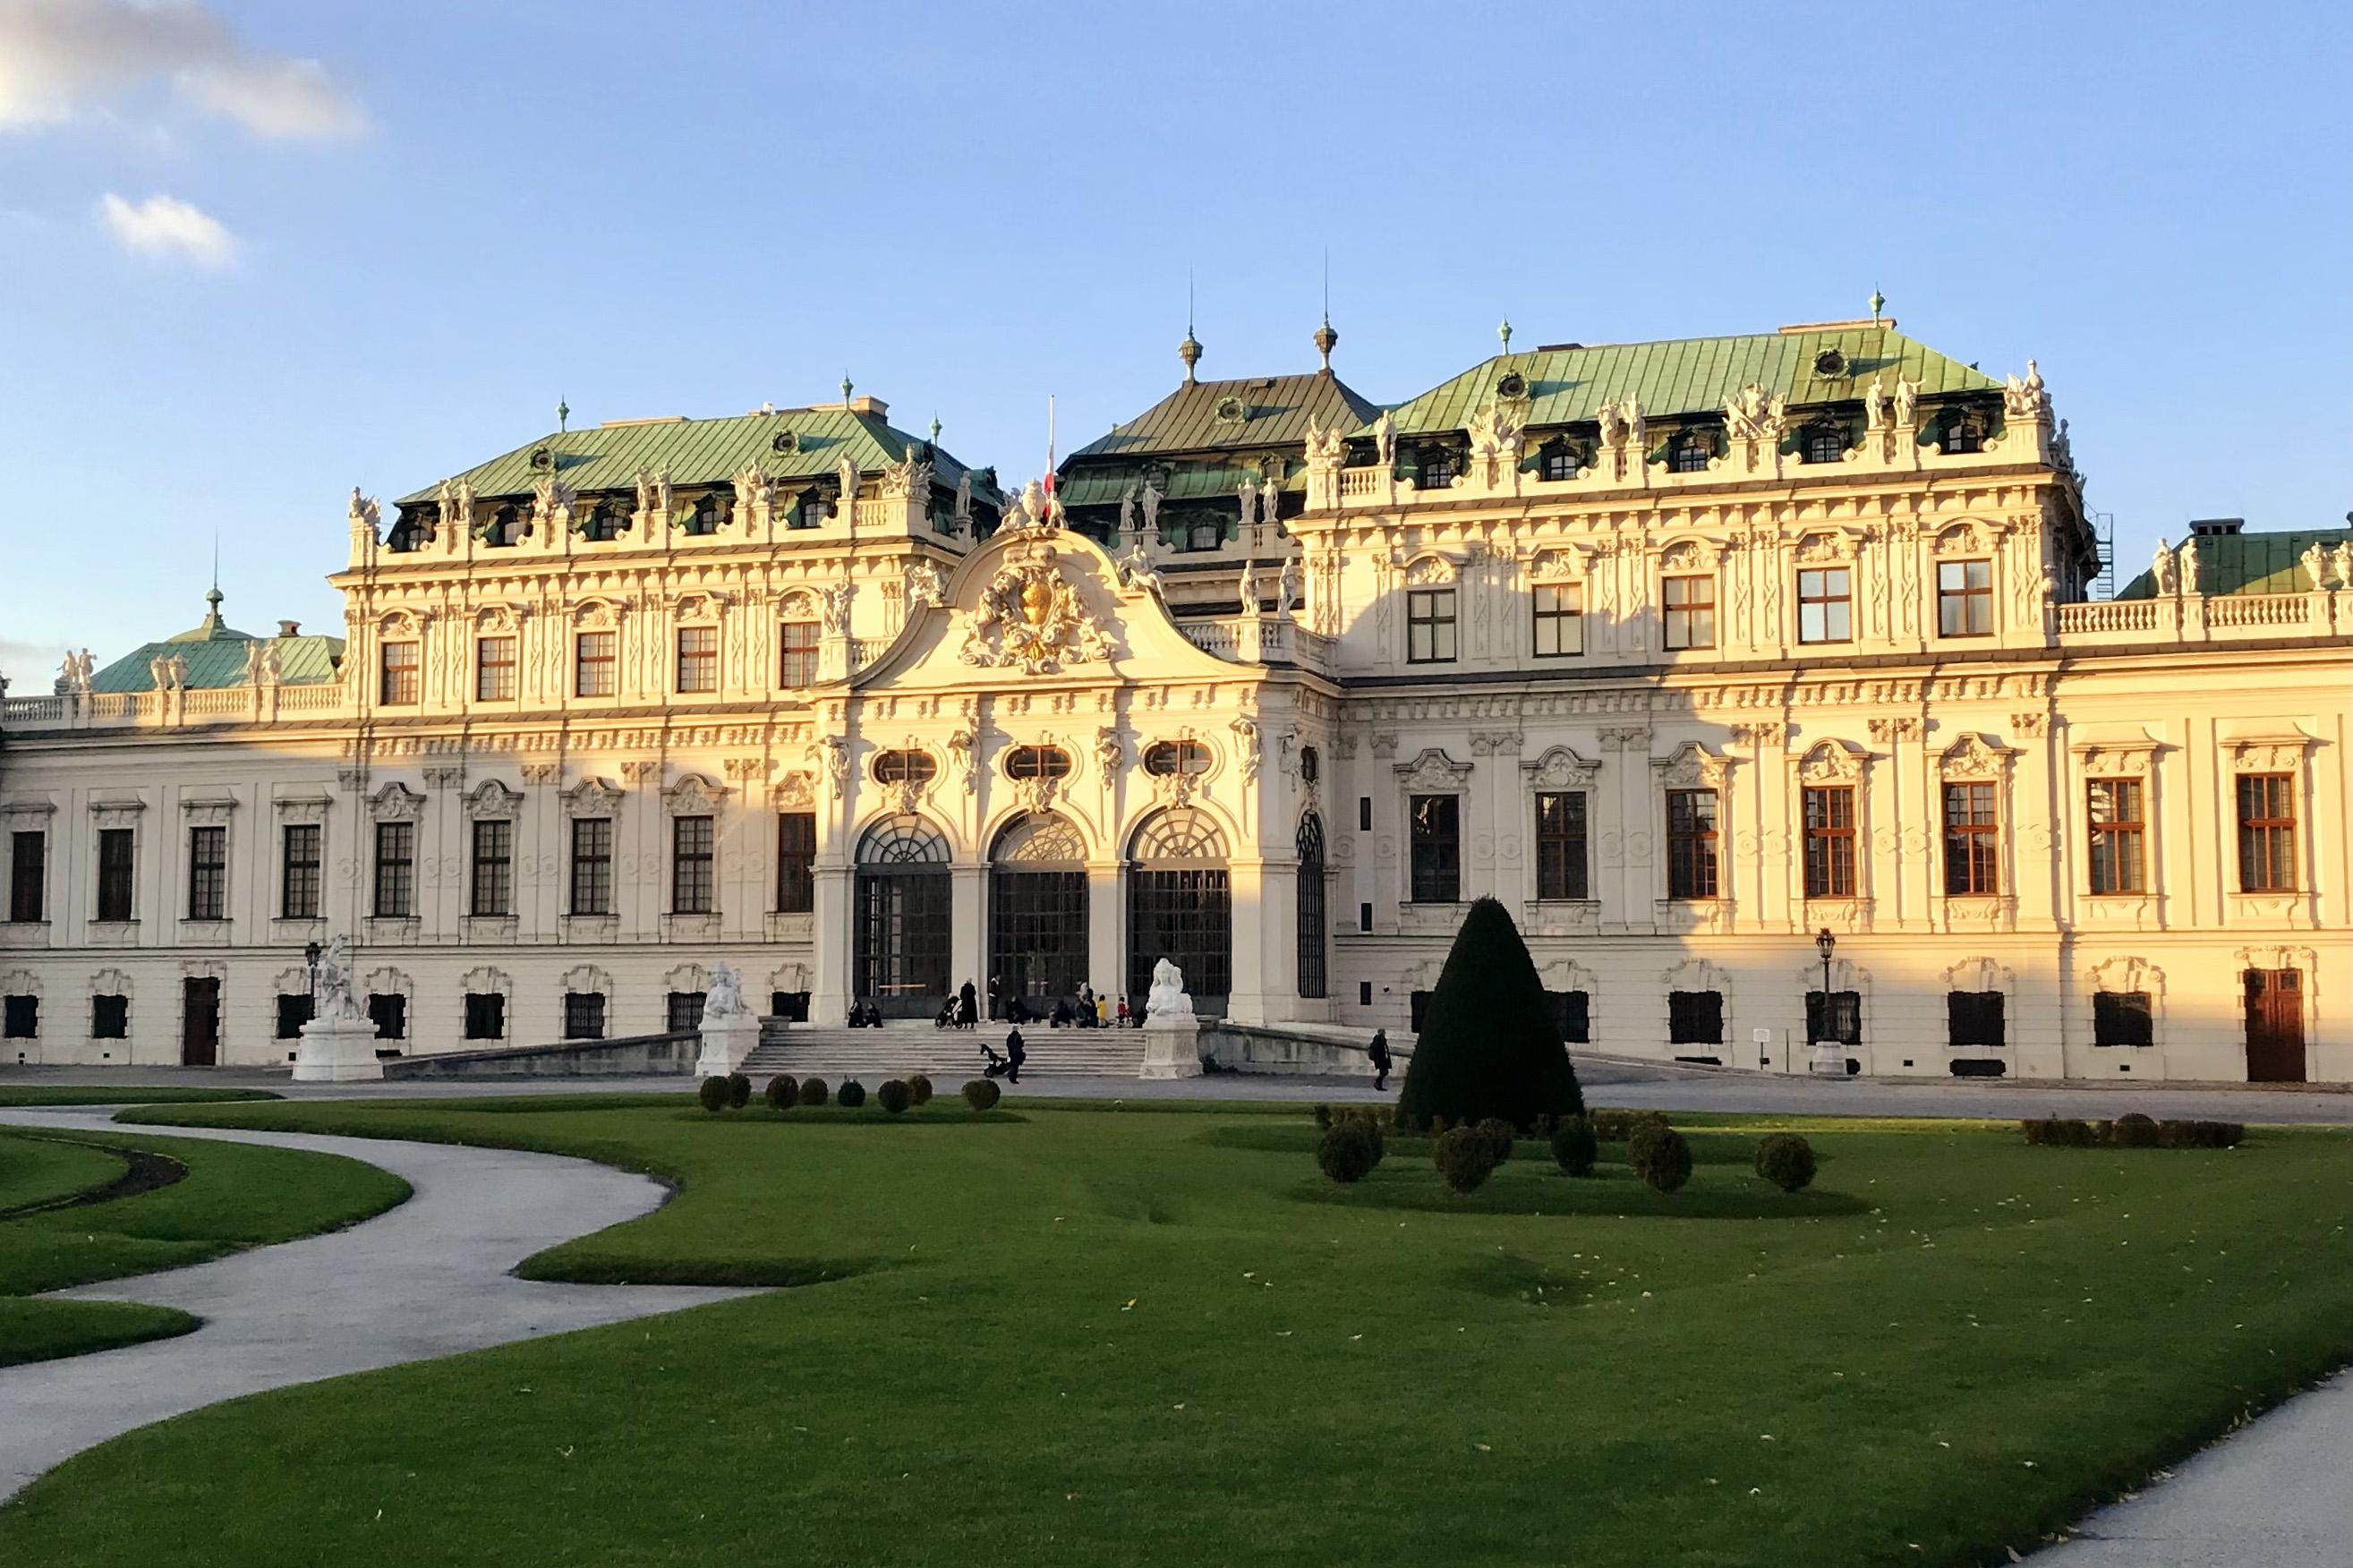 The Belvedere Palace not far from the Quellenstrasse Campus